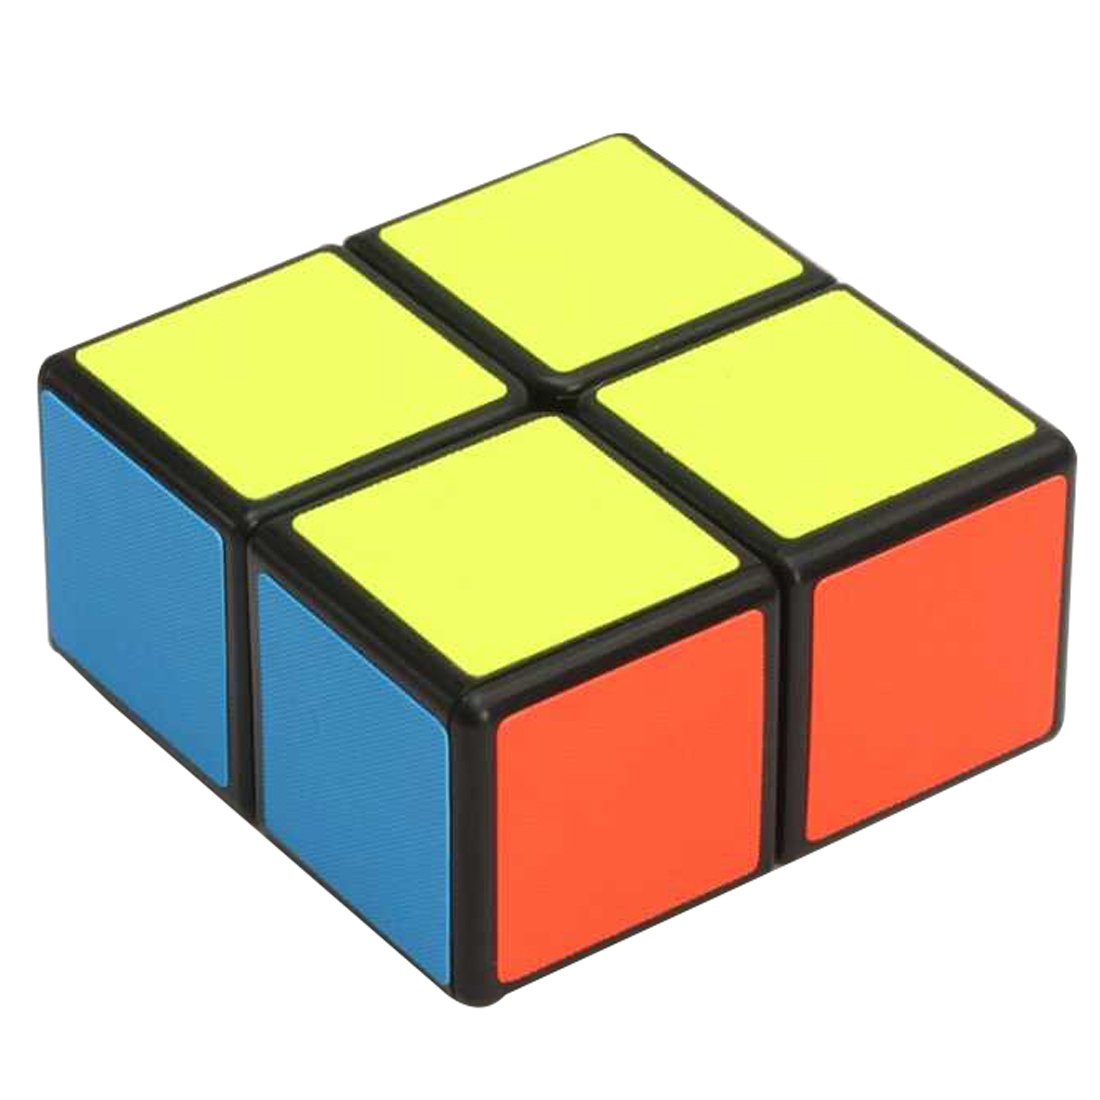 Zcube 122 Magic Cube 1x2x2 Speed Cube Puzzle Toy - Black / White